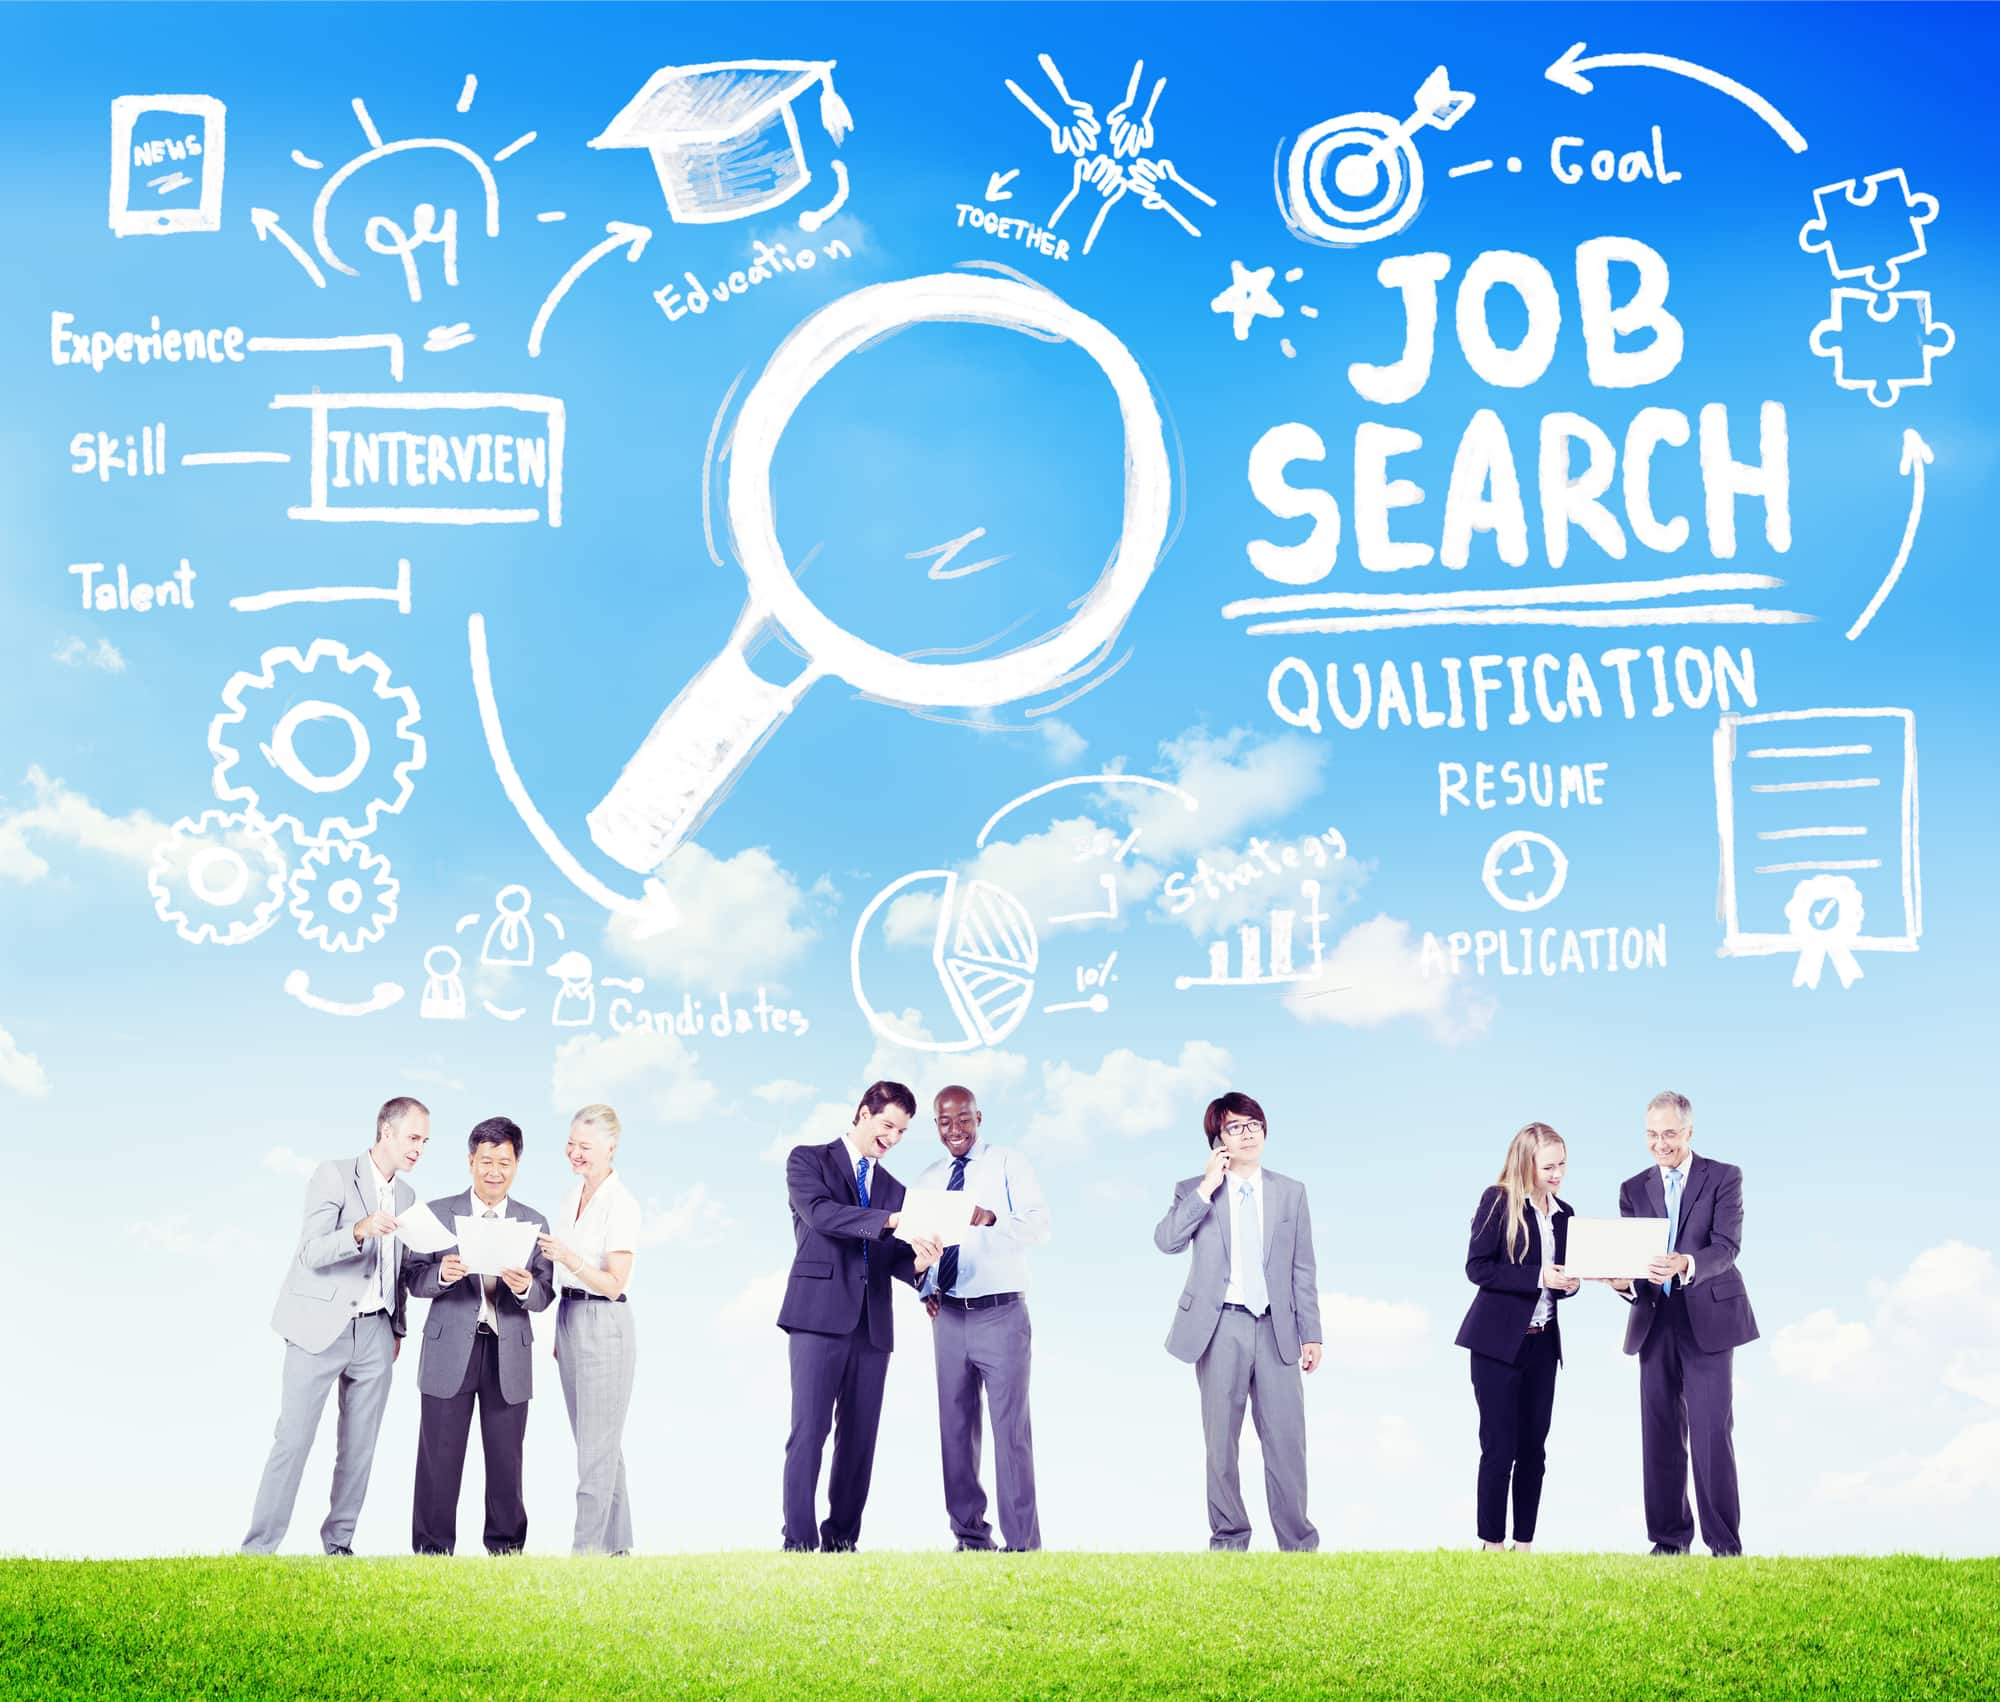 Depositphotos_71614853_l-2015 Missing opportunities? Are you creating only an ATS resume?